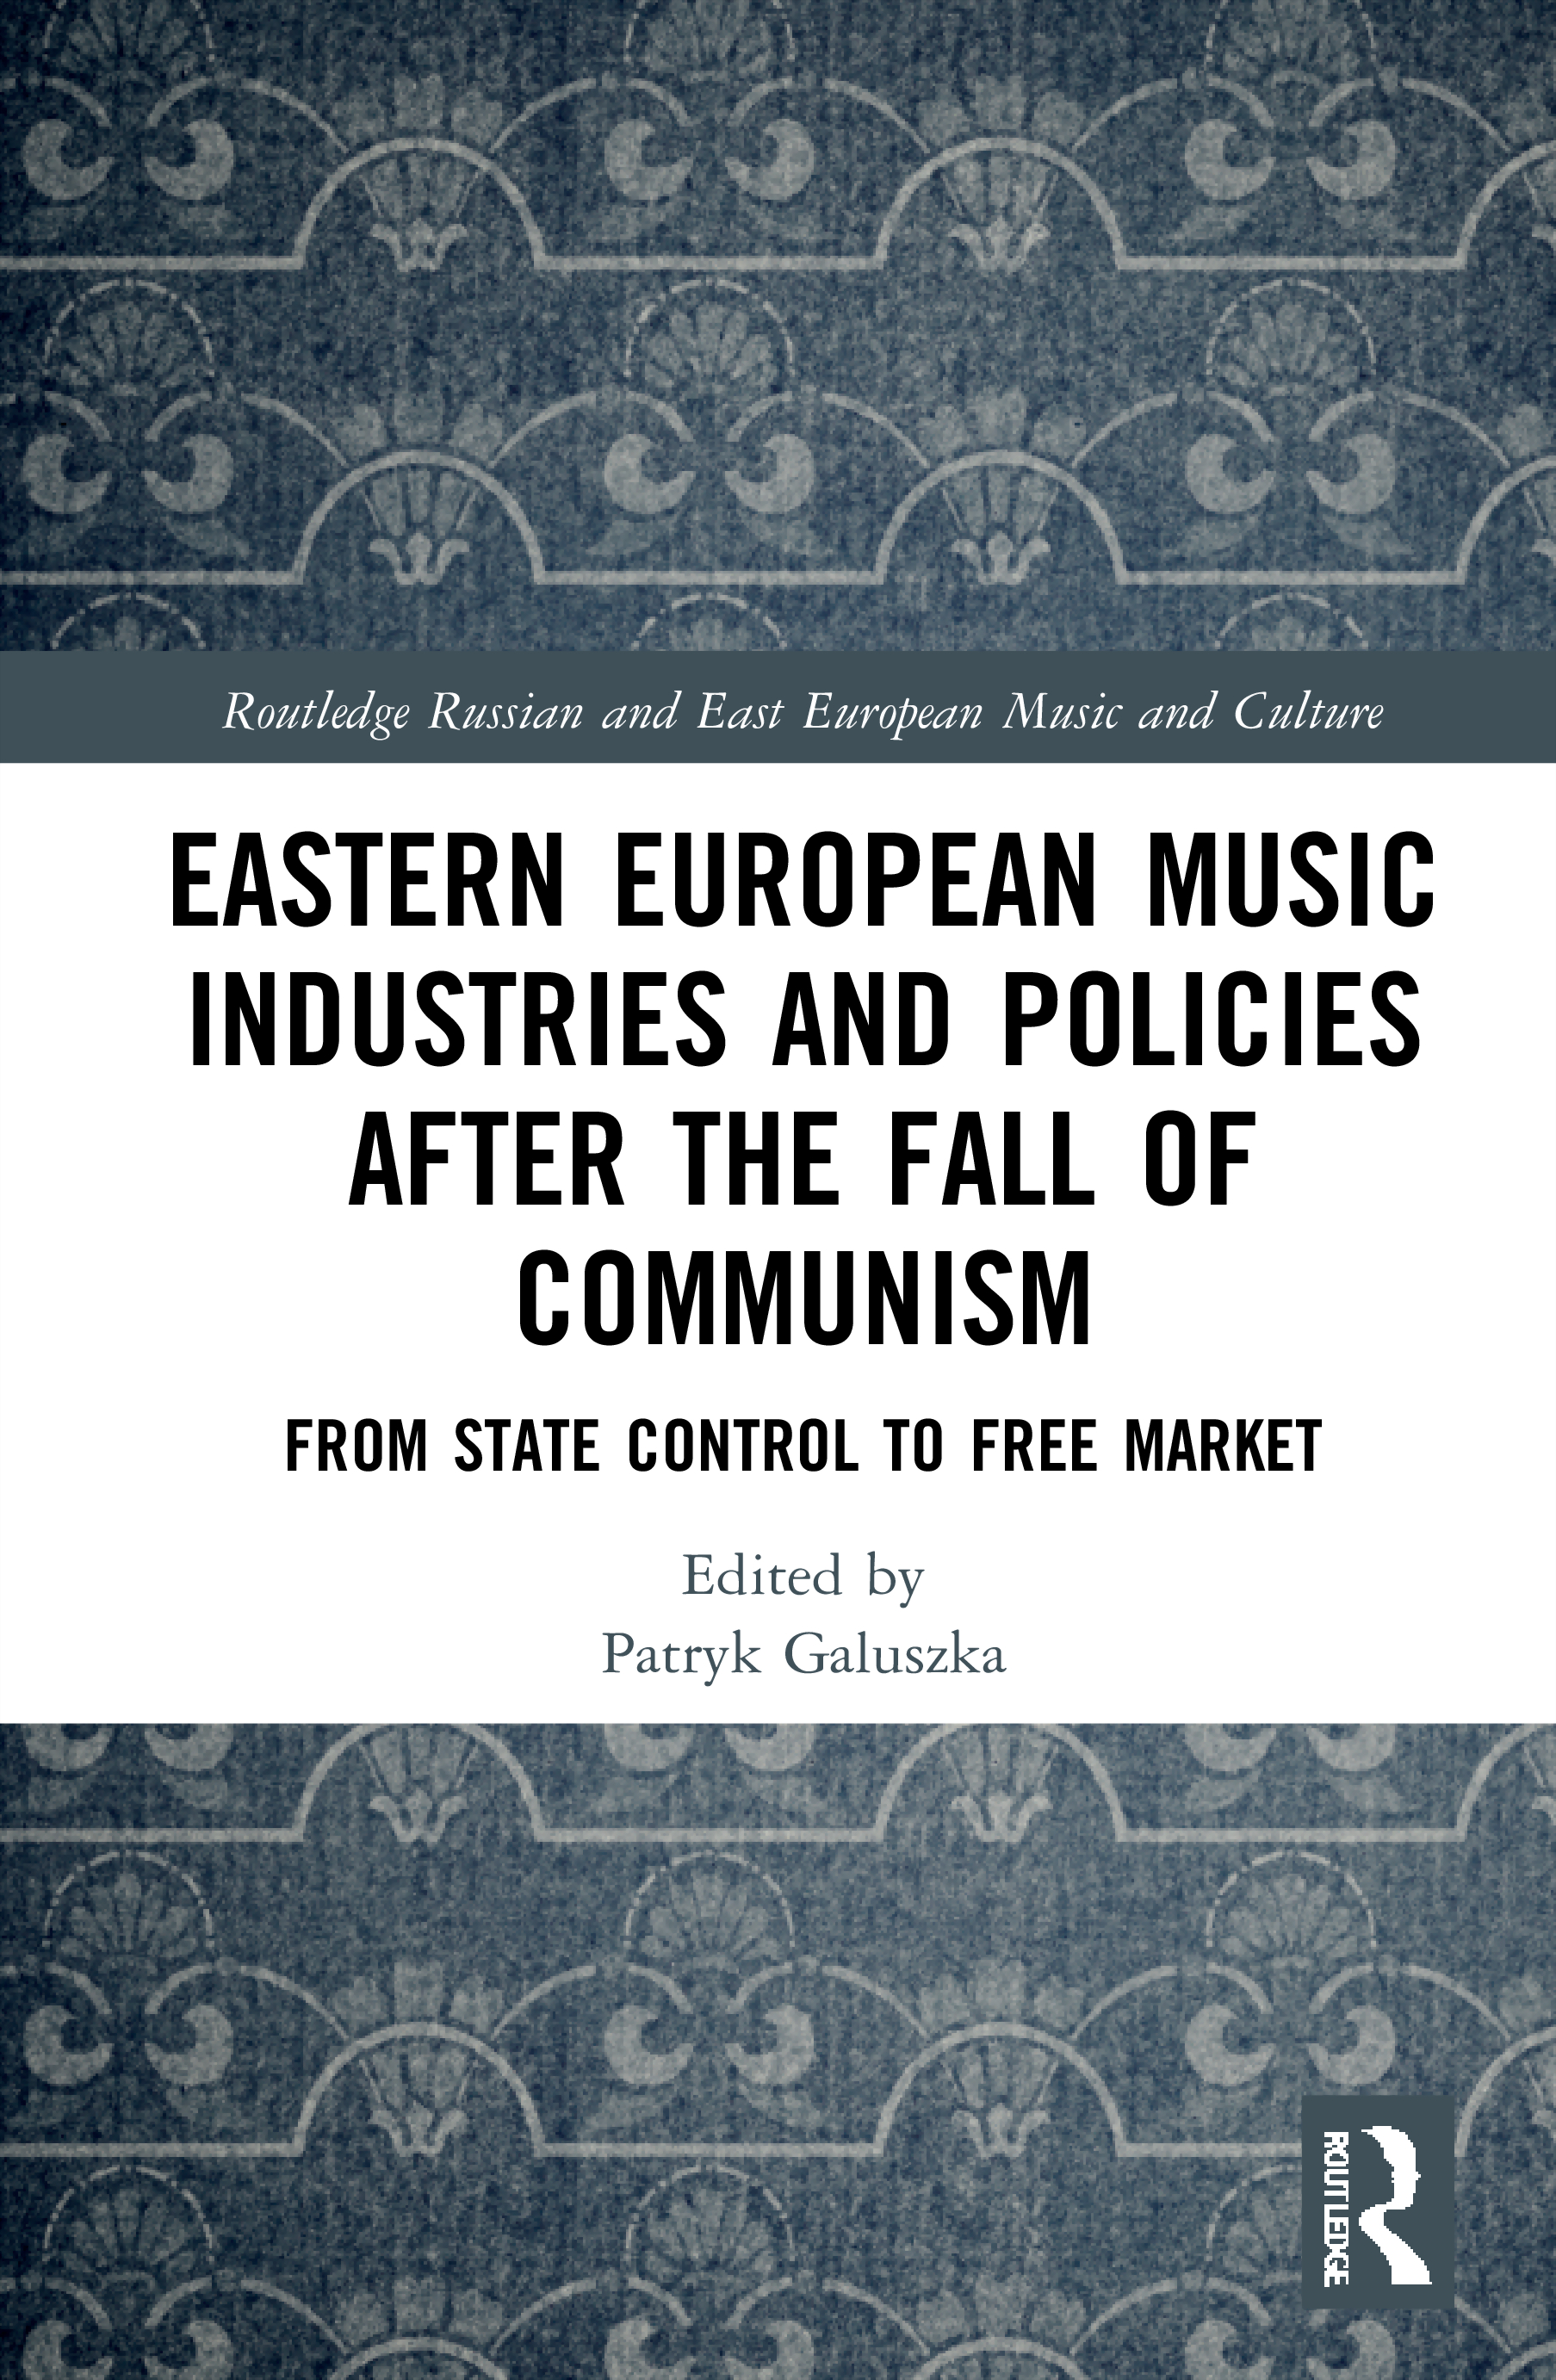 'We have no music industry!' Exploring the context of post-Soviet music making through the lens of contemporary Swedo-Russian collaborations